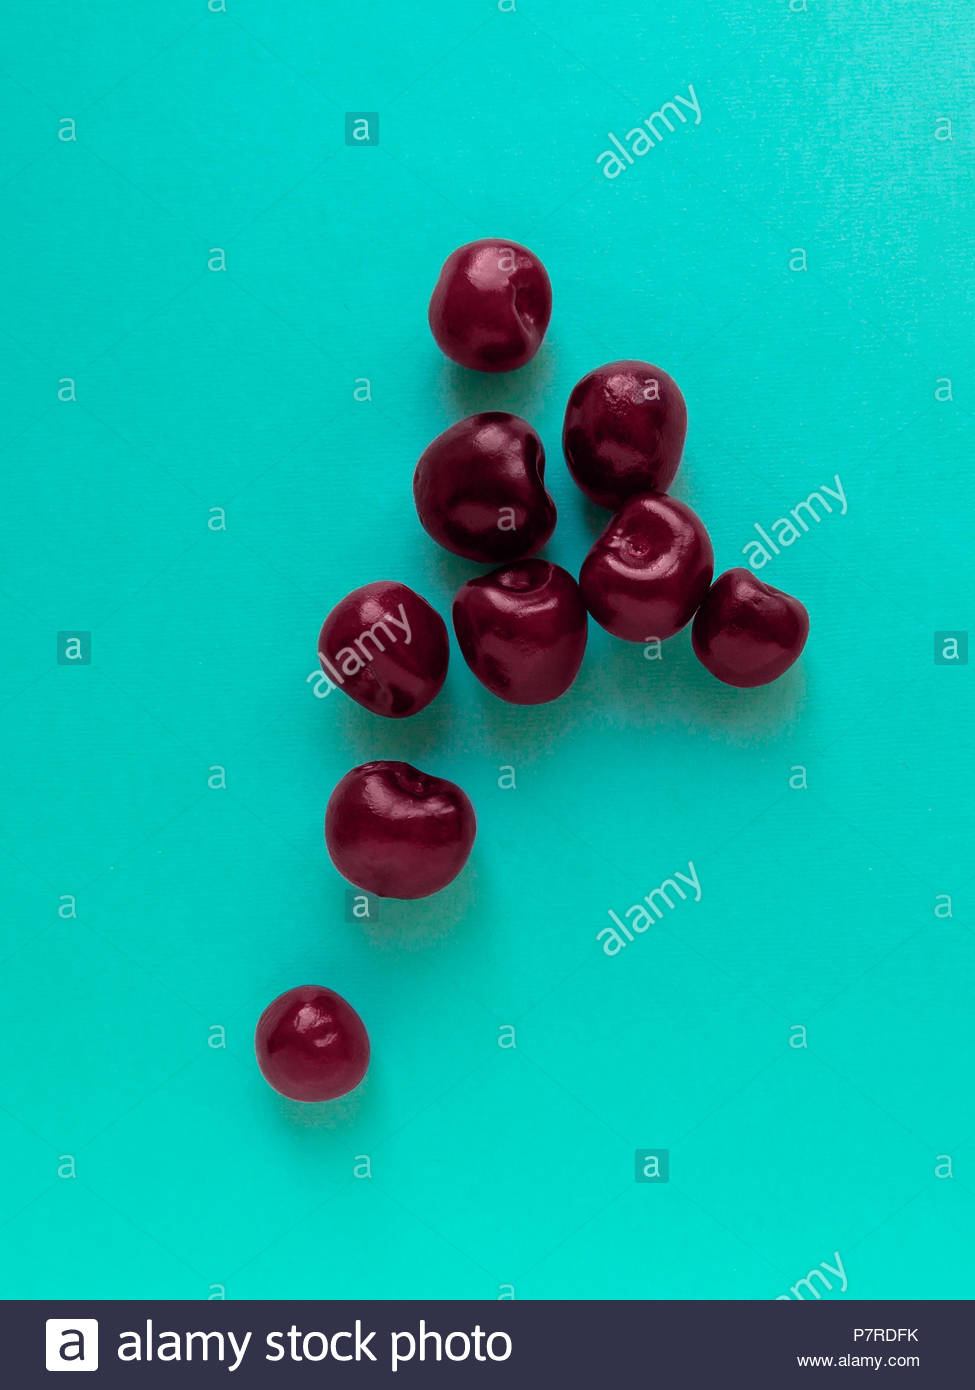 Cherry Top view Many ripe cherries are lying on blue background Flat lay photo - Stock Image